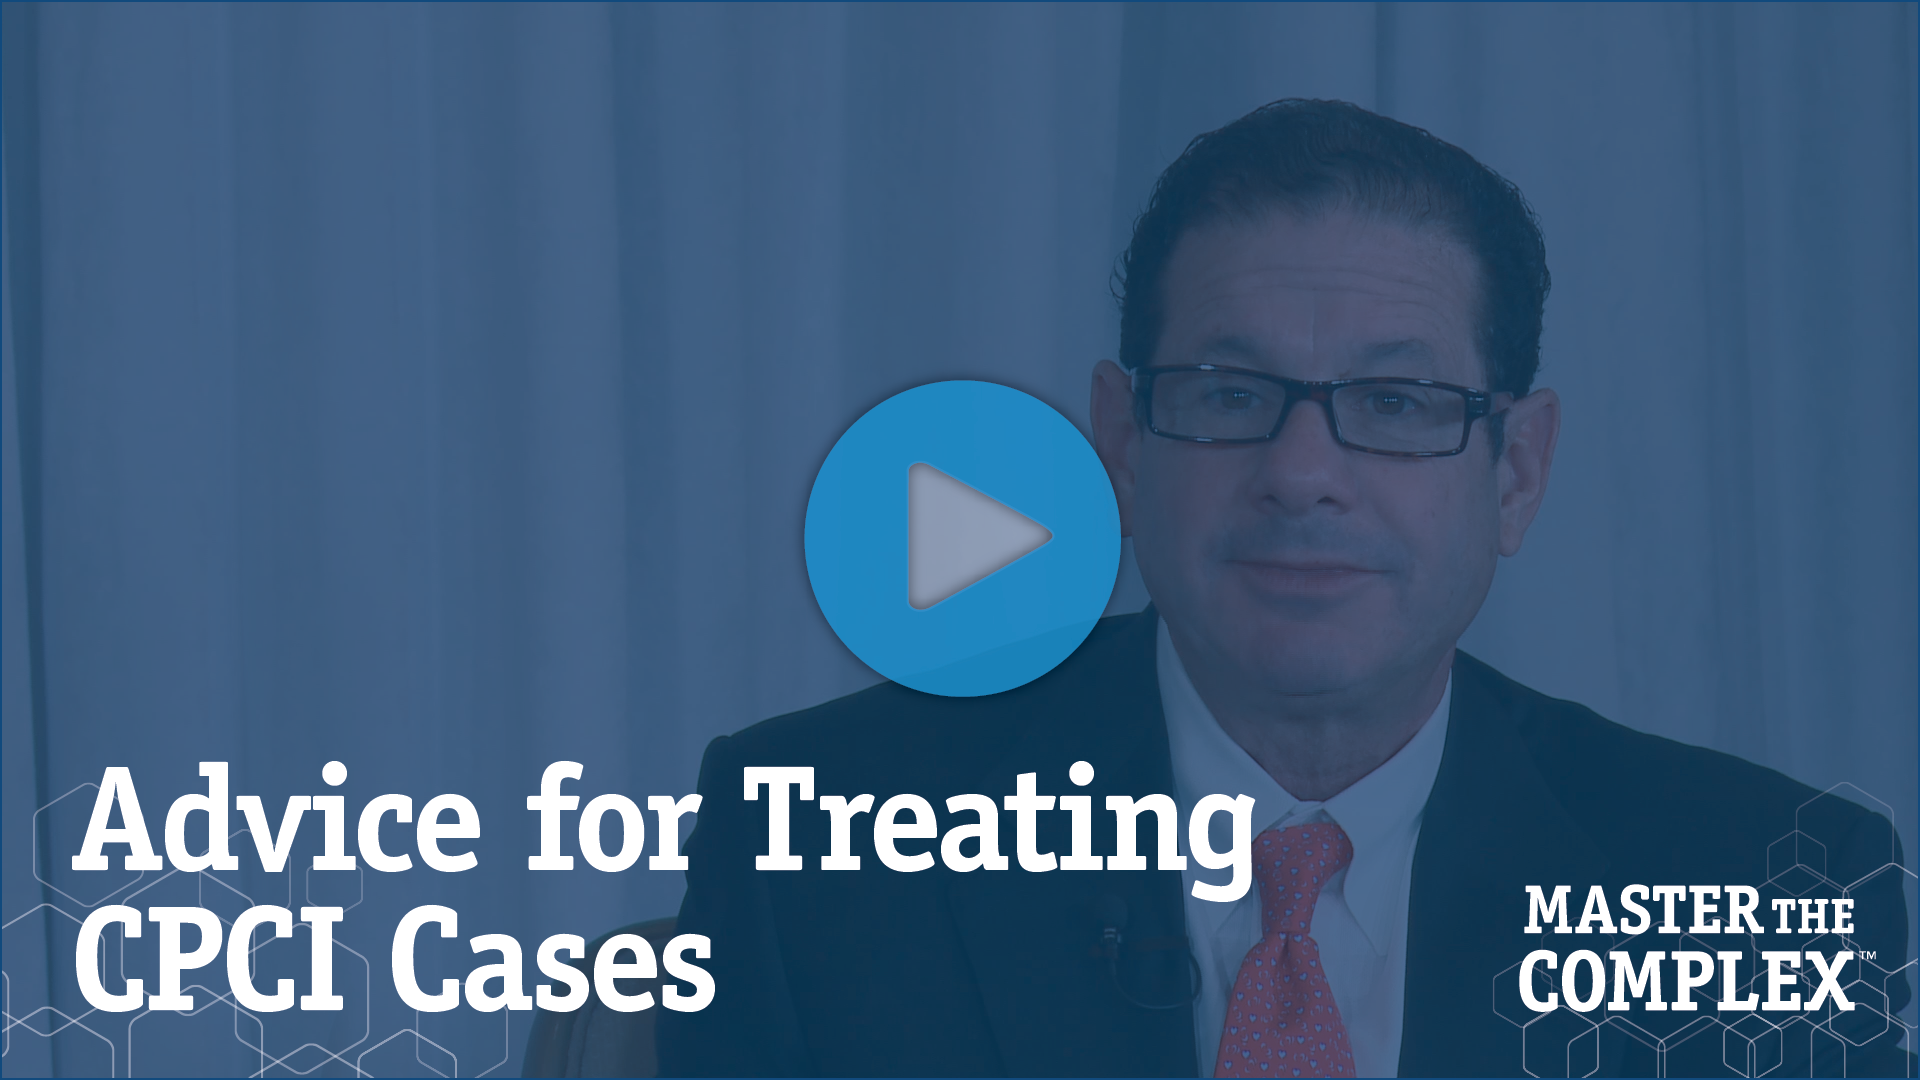 Advice for Treating CPCI Cases: For a young physician just starting out in their career, what advice can you give them if they're looking to follow in your footsteps in treating complex PCI cases?